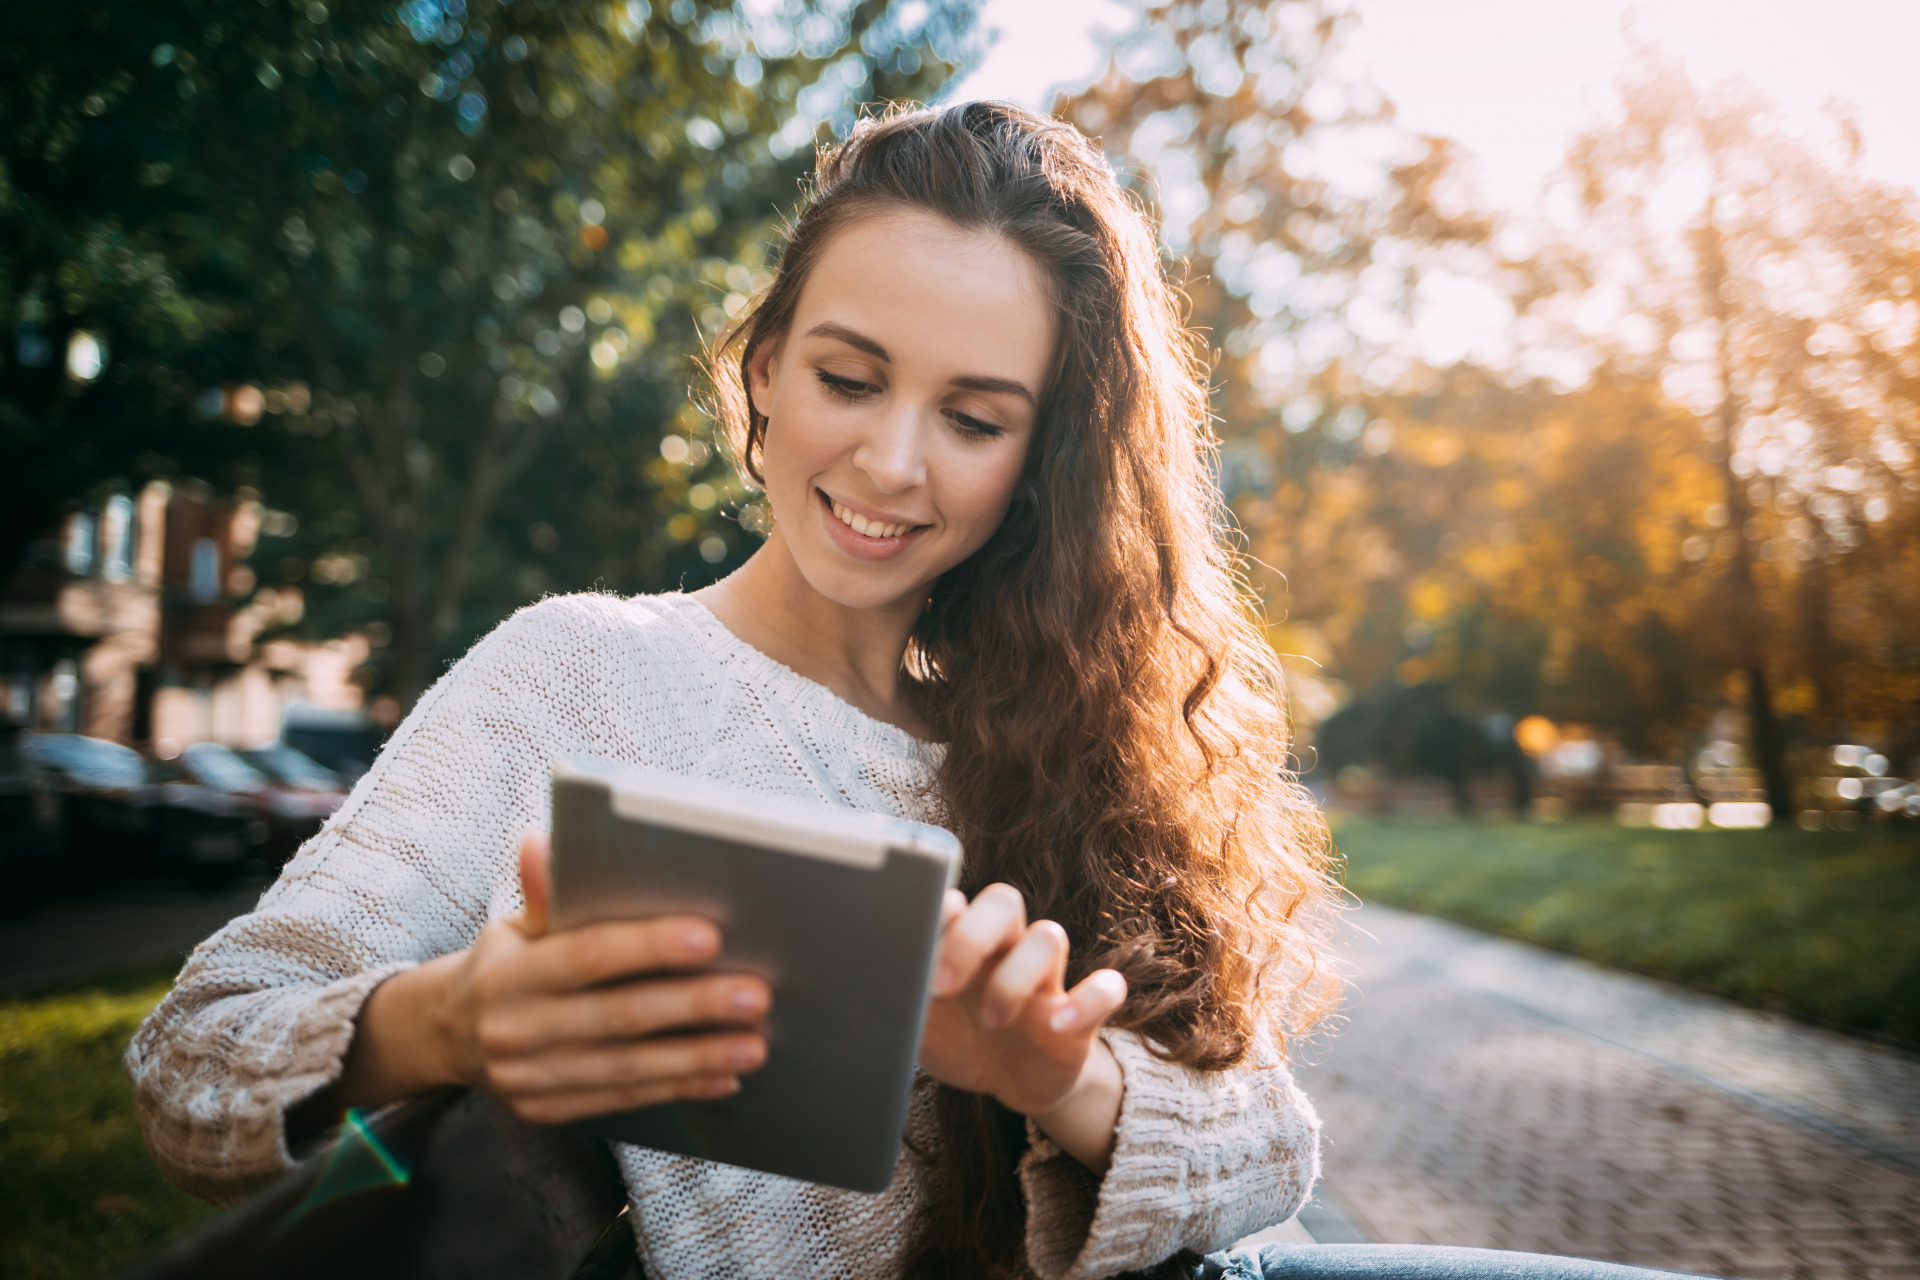 Young woman looking at a tablet - SEO Baltimore - Eyler Creative